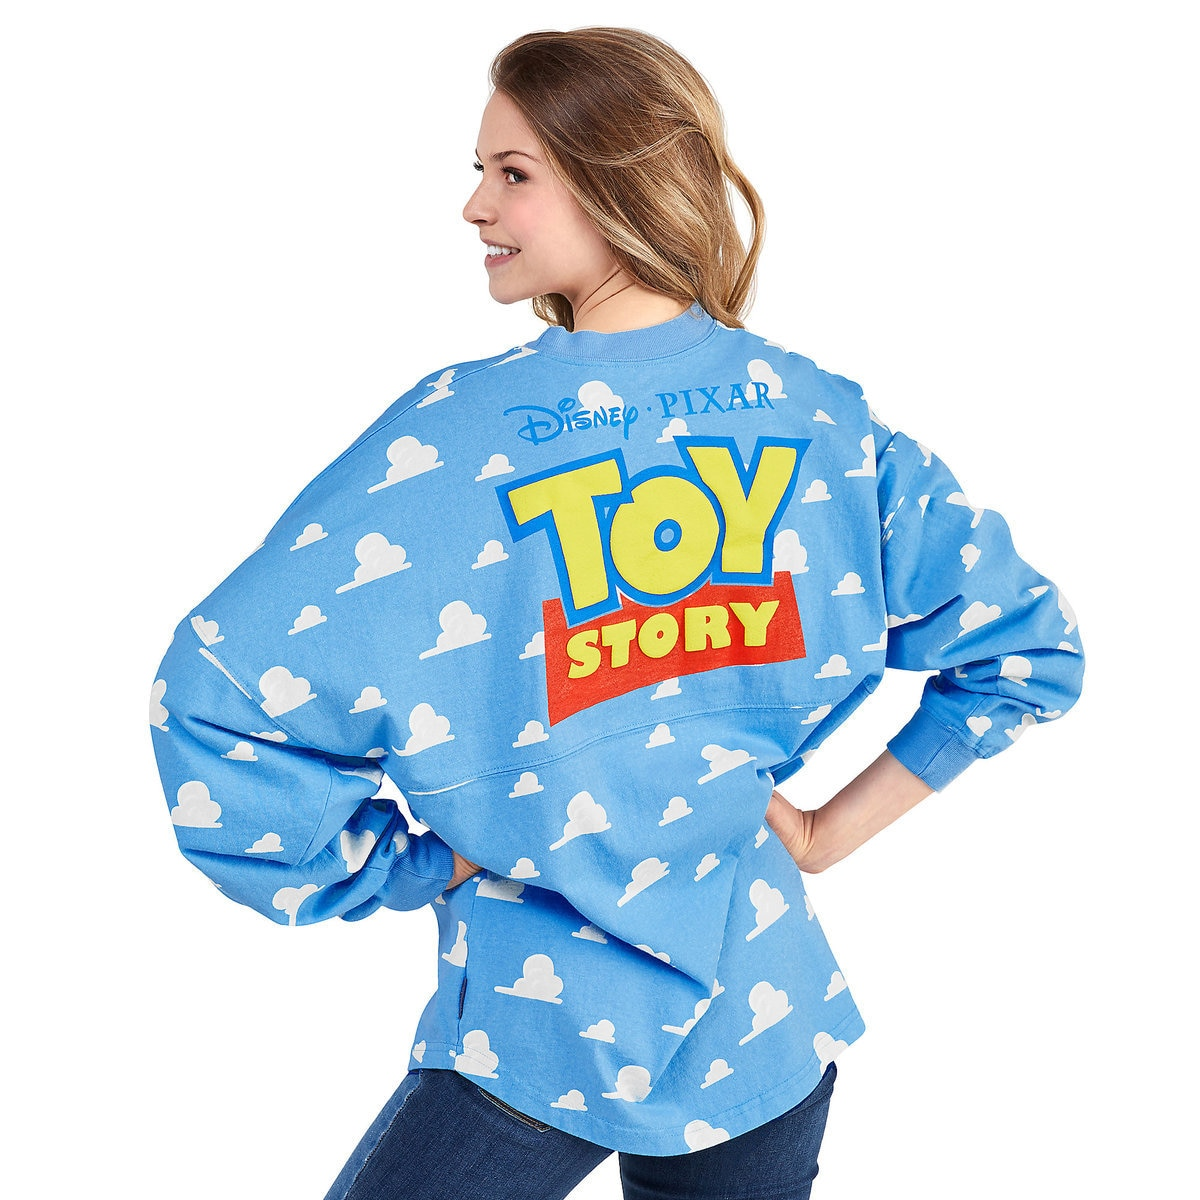 f01644b6 Product Image of Toy Story Spirit Jersey for Adults # 2